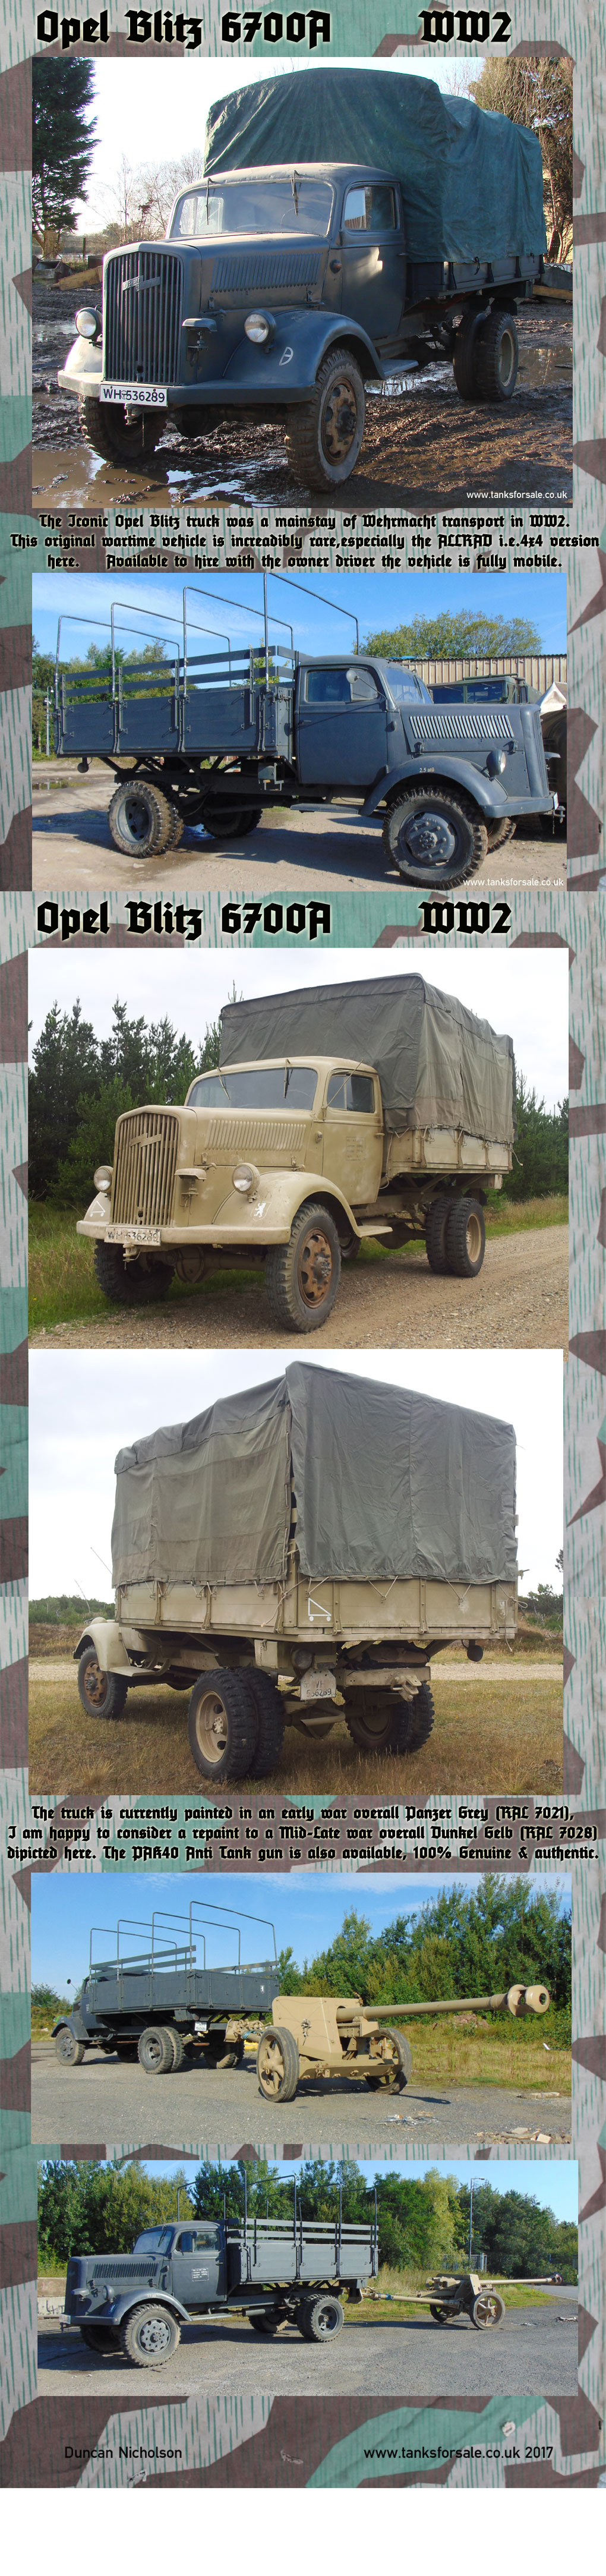 Opel Blitz WW2 German truck for hire